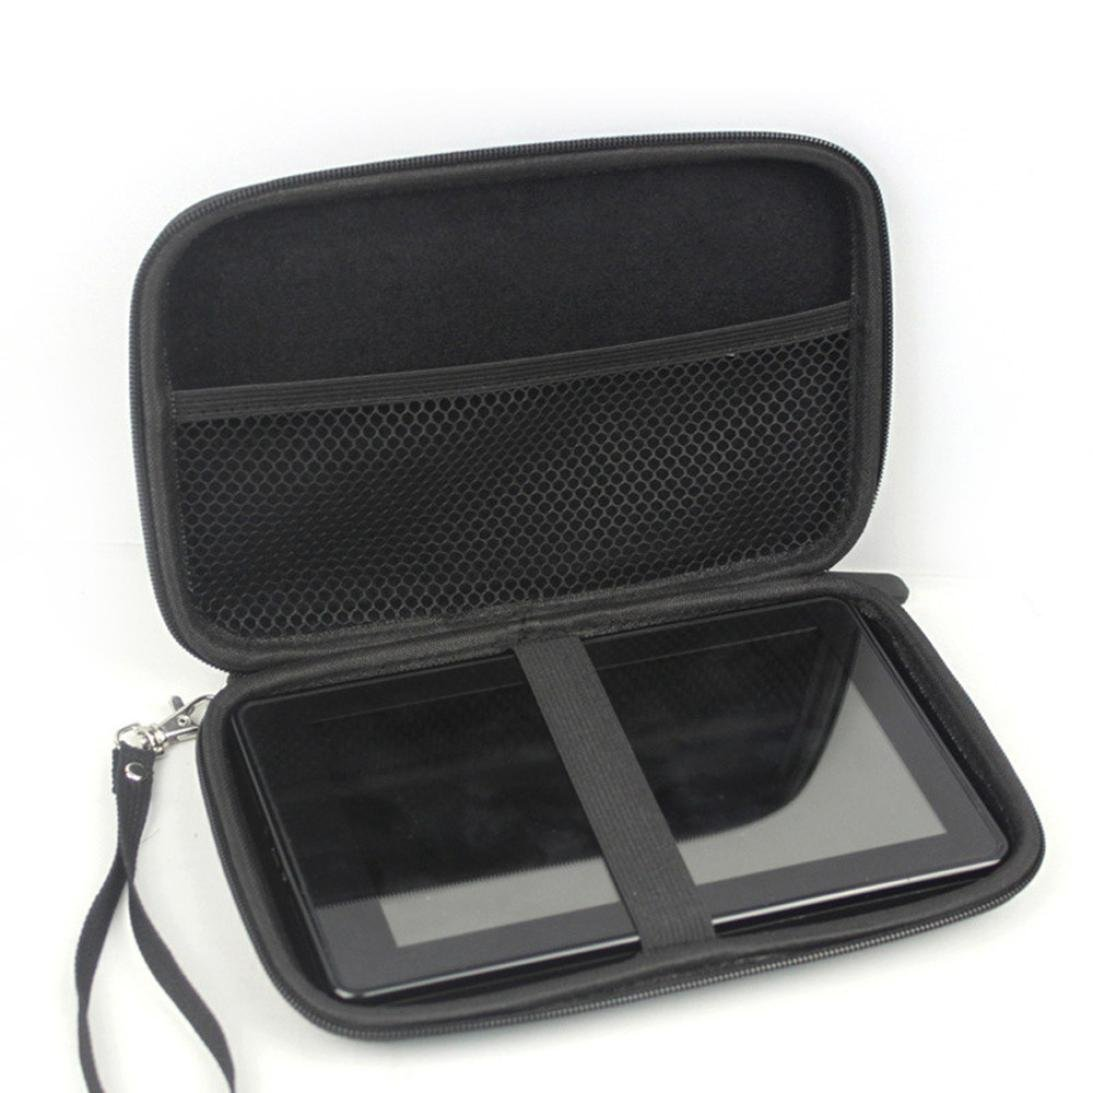 """bestpriceam 2x Portable 7""""Inch GPS Case Hard Shell Travel Carrying Case Bag for 6"""" 7"""" Garmin"""